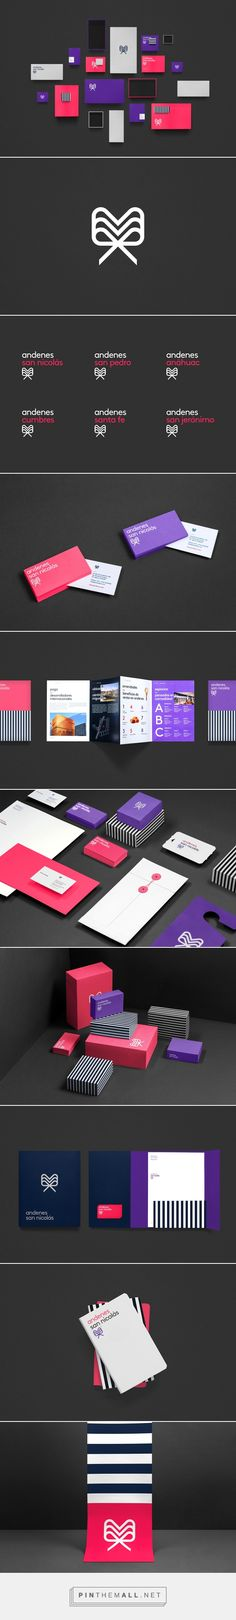 Andenes branding packaging design on Behance by one of our favorite designers Anagrama curated by Packaging Diva PD colorful and fun.